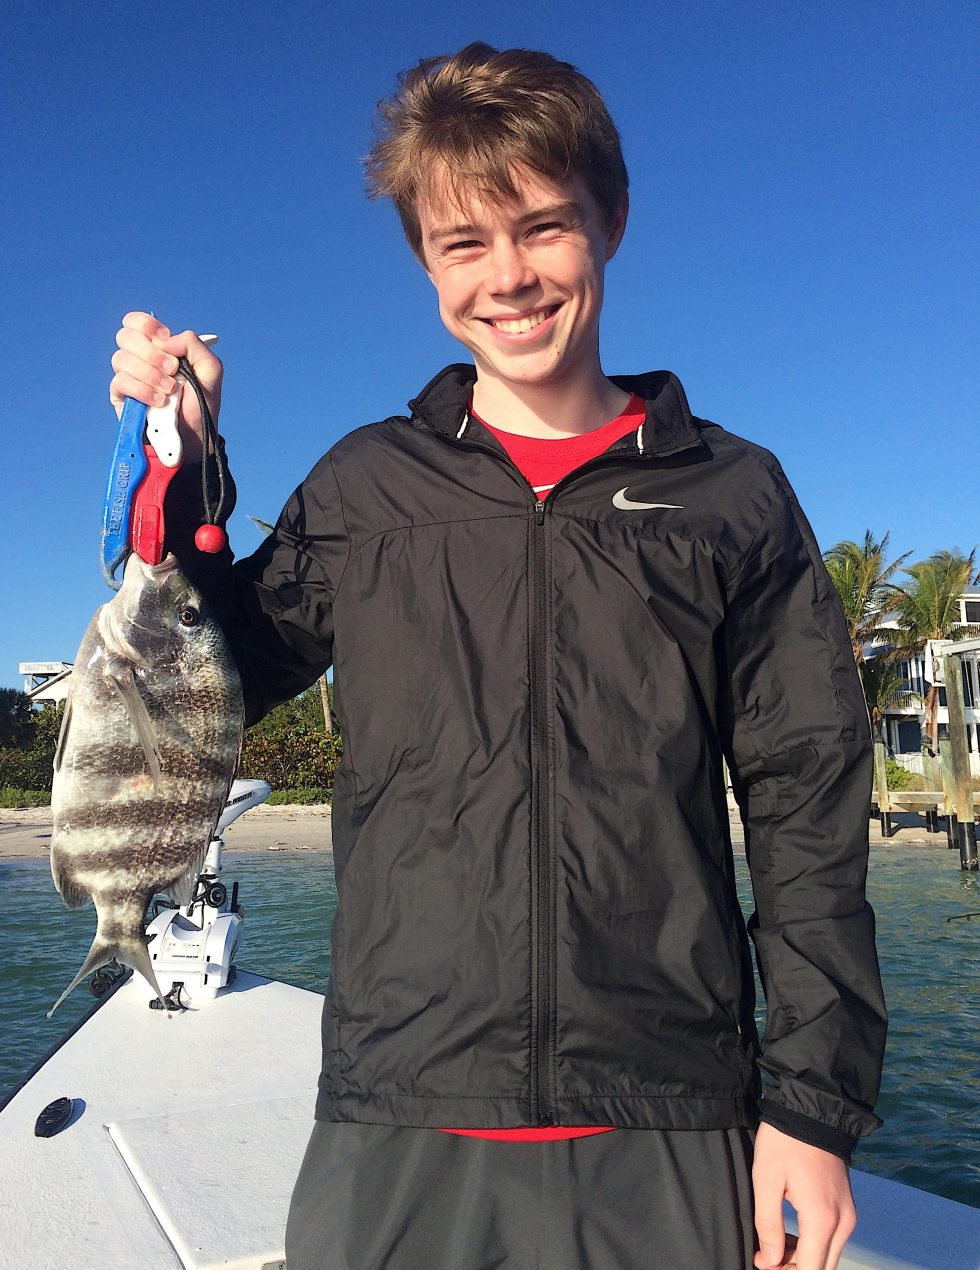 Sheepshead, Catch & Release, Sanibel Island Fishing Charters & Captiva Island Fishing Charters, Sanibel Island, Sunday, March 25, 2018.